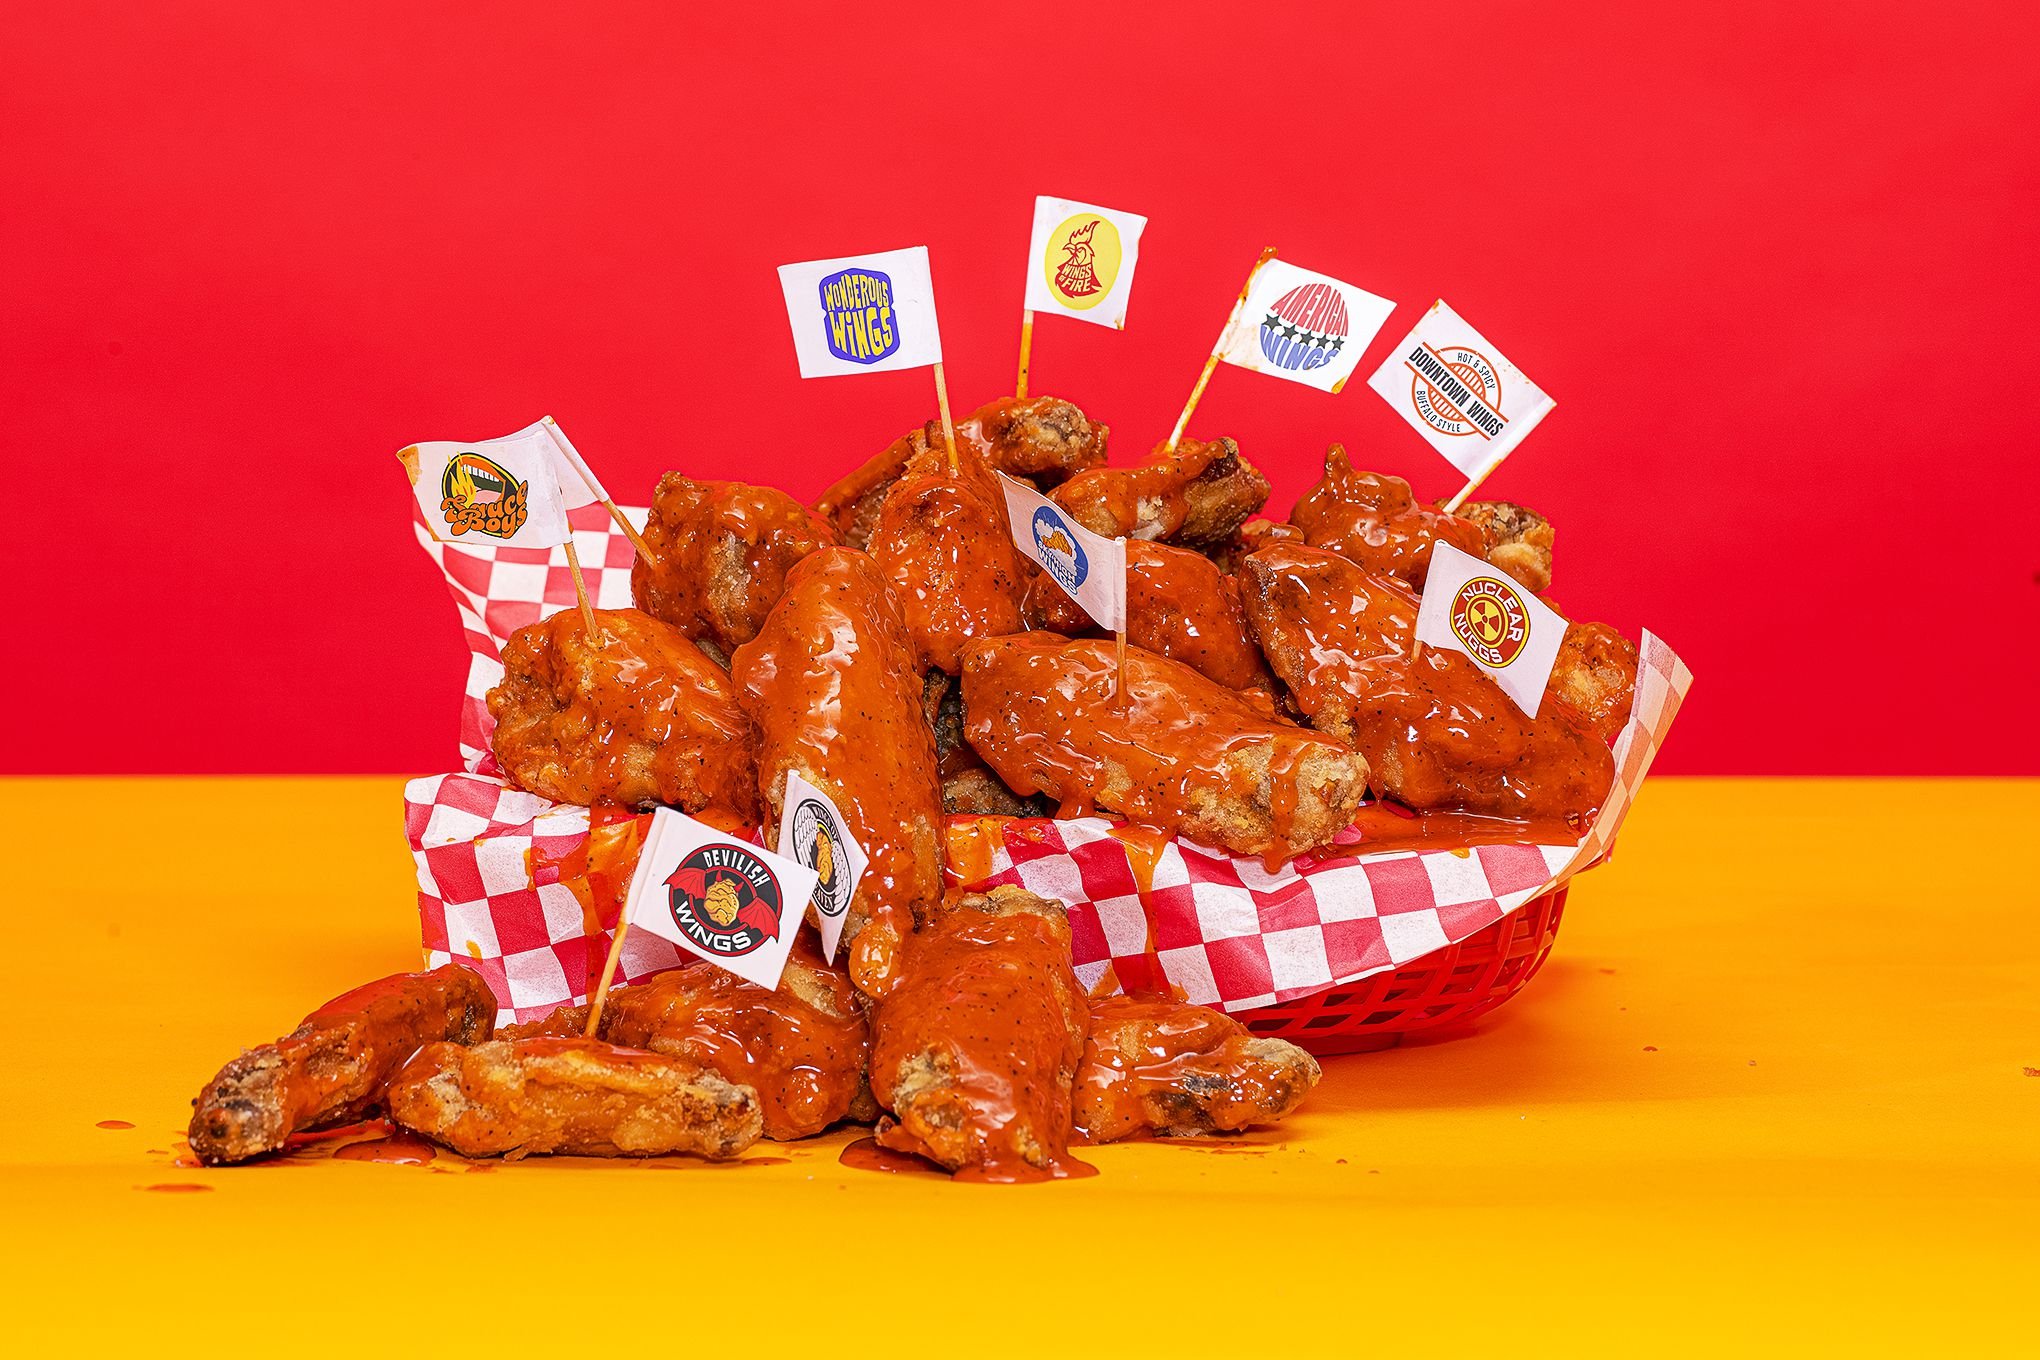 An image of a basket full of wings over a red and yellow background. Several wings have a toothpick planted in them connected to a flag with a different made up chicken wing restaurant logo.